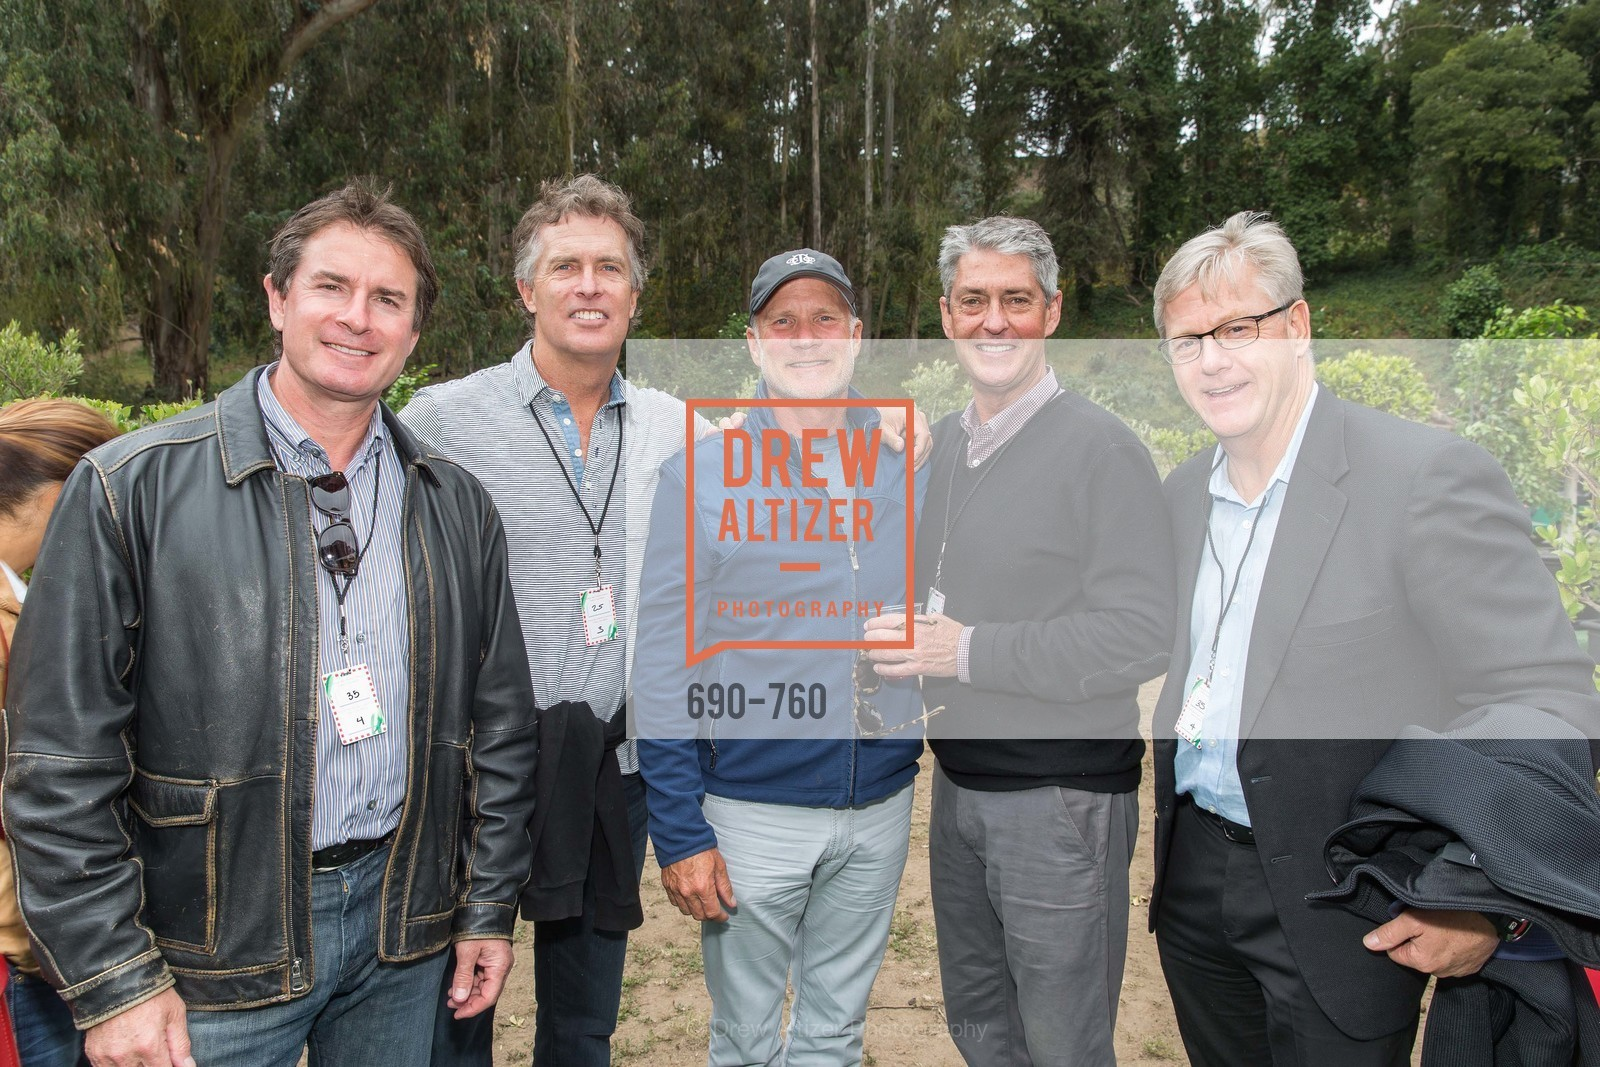 Larry Solomon, Mike Corley, Richard Steiny, Tom Suiter, Bill Ring, The Big Picnic! A Benefit & Concert for STERN GROVE FESTIVAL, US, June 14th, 2015,Drew Altizer, Drew Altizer Photography, full-service agency, private events, San Francisco photographer, photographer california